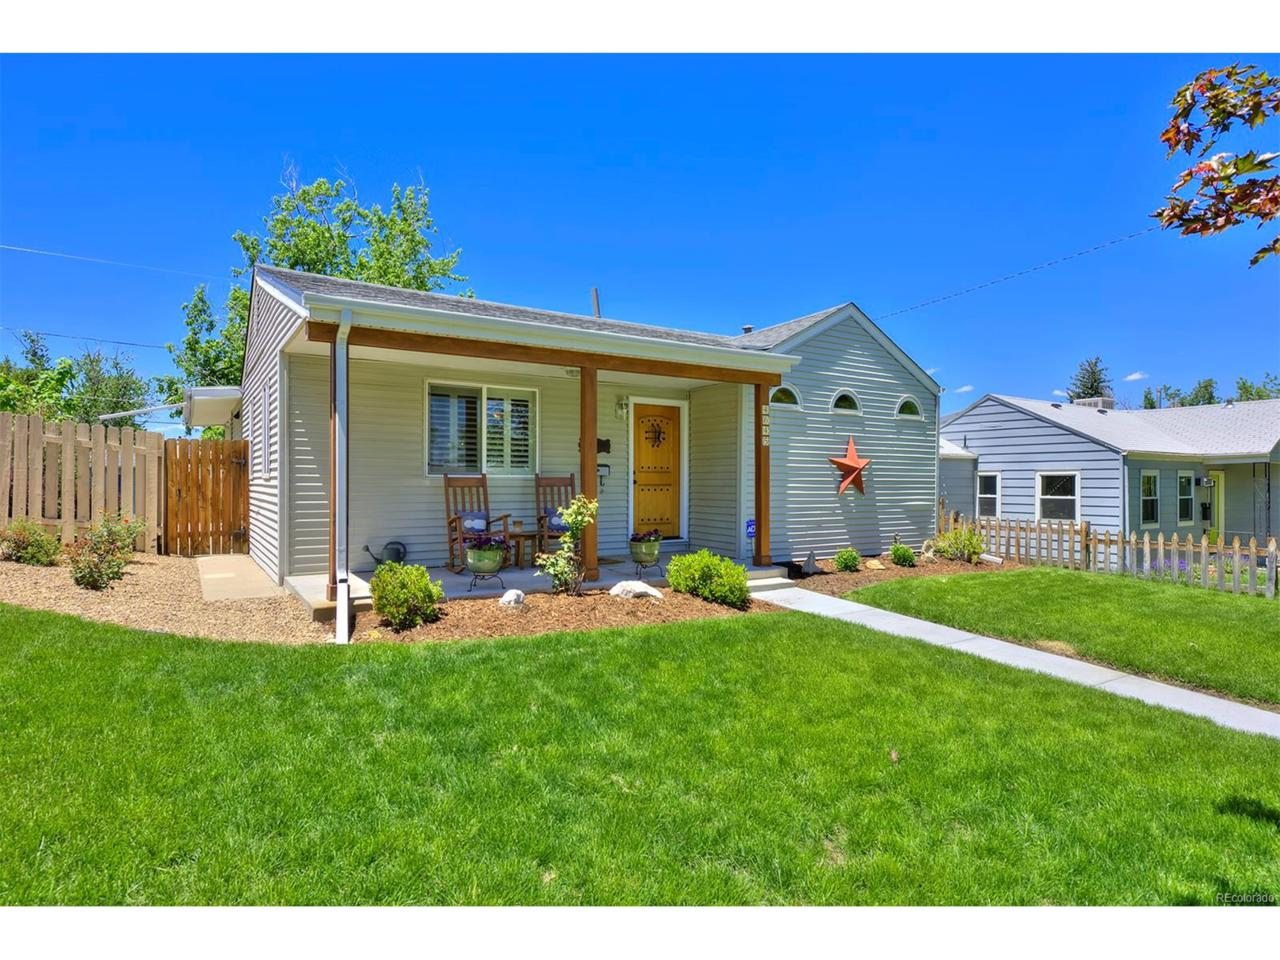 4645 Perry Street, Denver, CO 80212 (MLS #7517144) :: 8z Real Estate